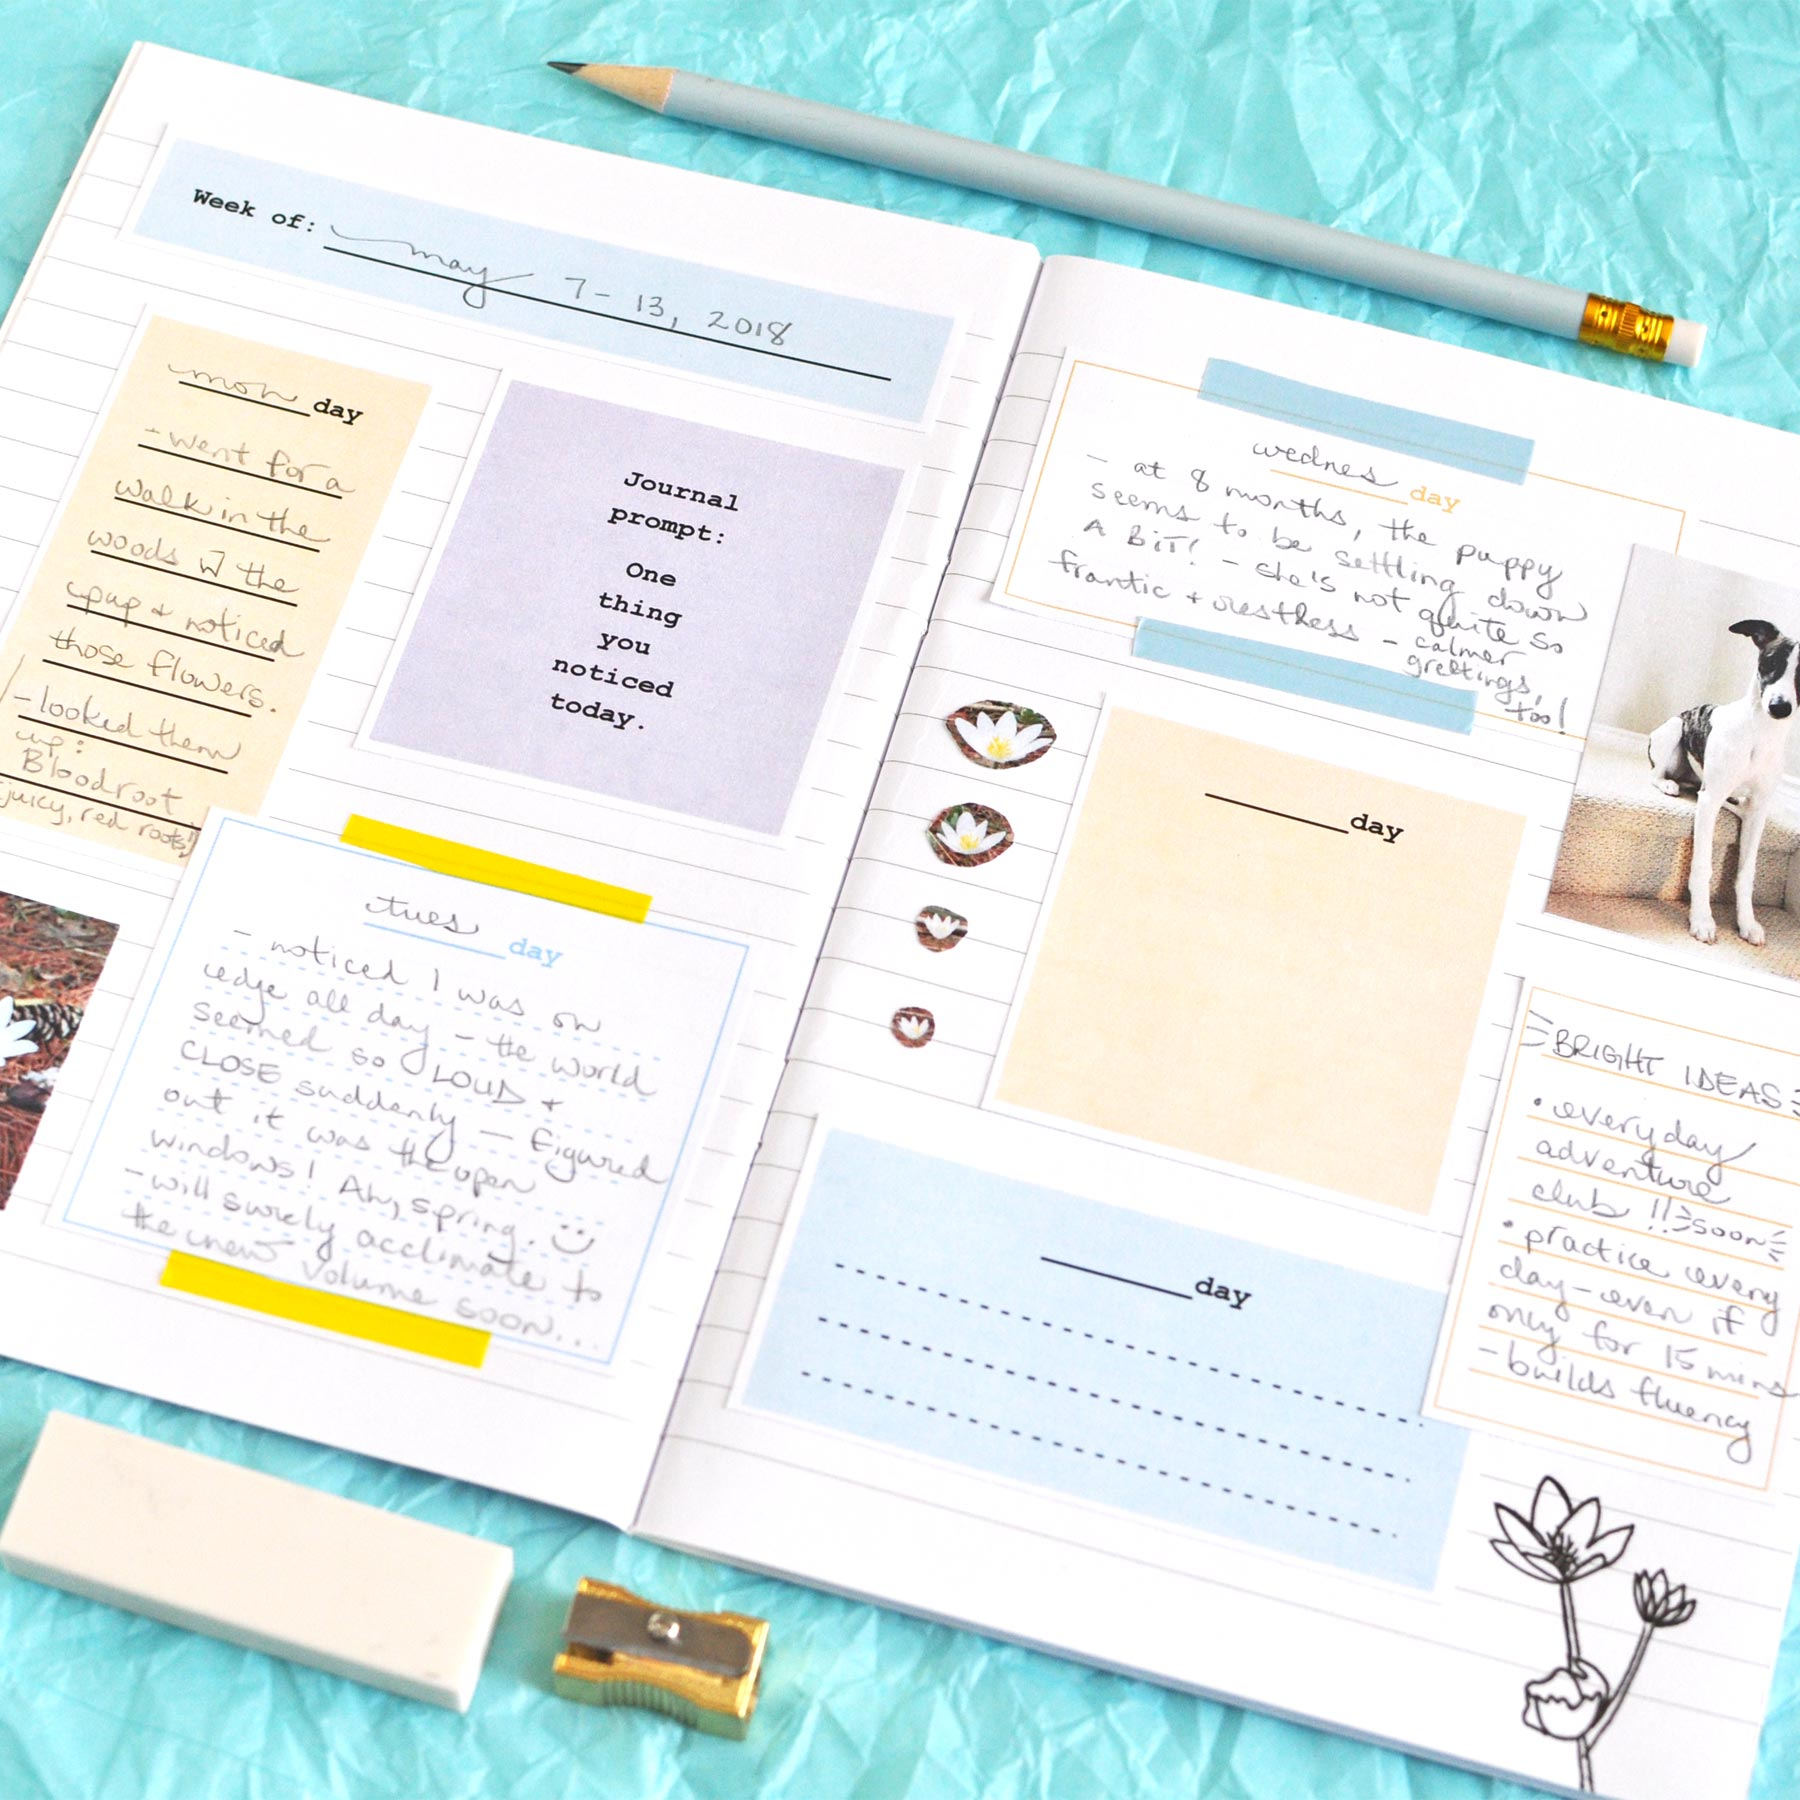 09-05-2018-Printable-journal-page-by-Christie-Zimmera.jpg